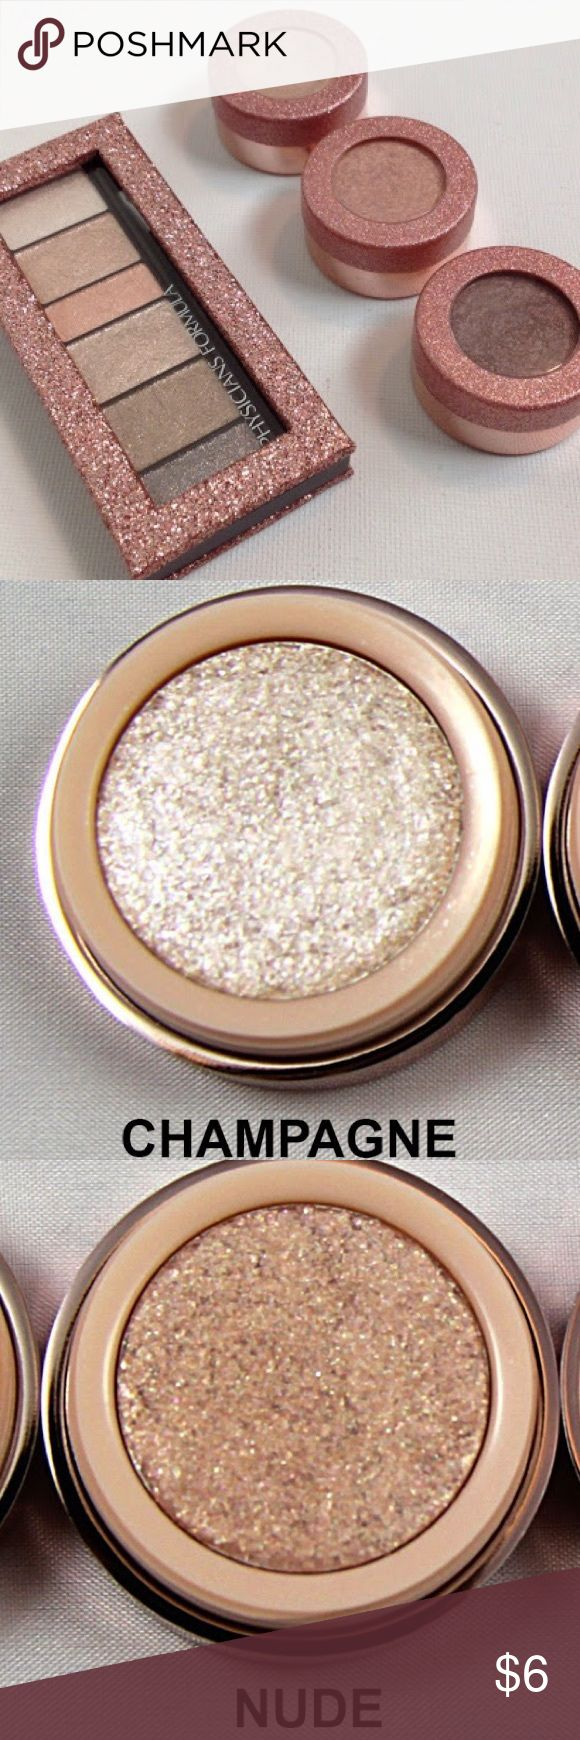 Physician Formula Shimmer Cream Eyeshadow Nude Duo Physicians Formula Extreme Shimmer Gel Cream Eyeshadow Nude Set • TWO COLORS LEFT-- NUDE & CHAMPAGNE Makeup Eyeshadow